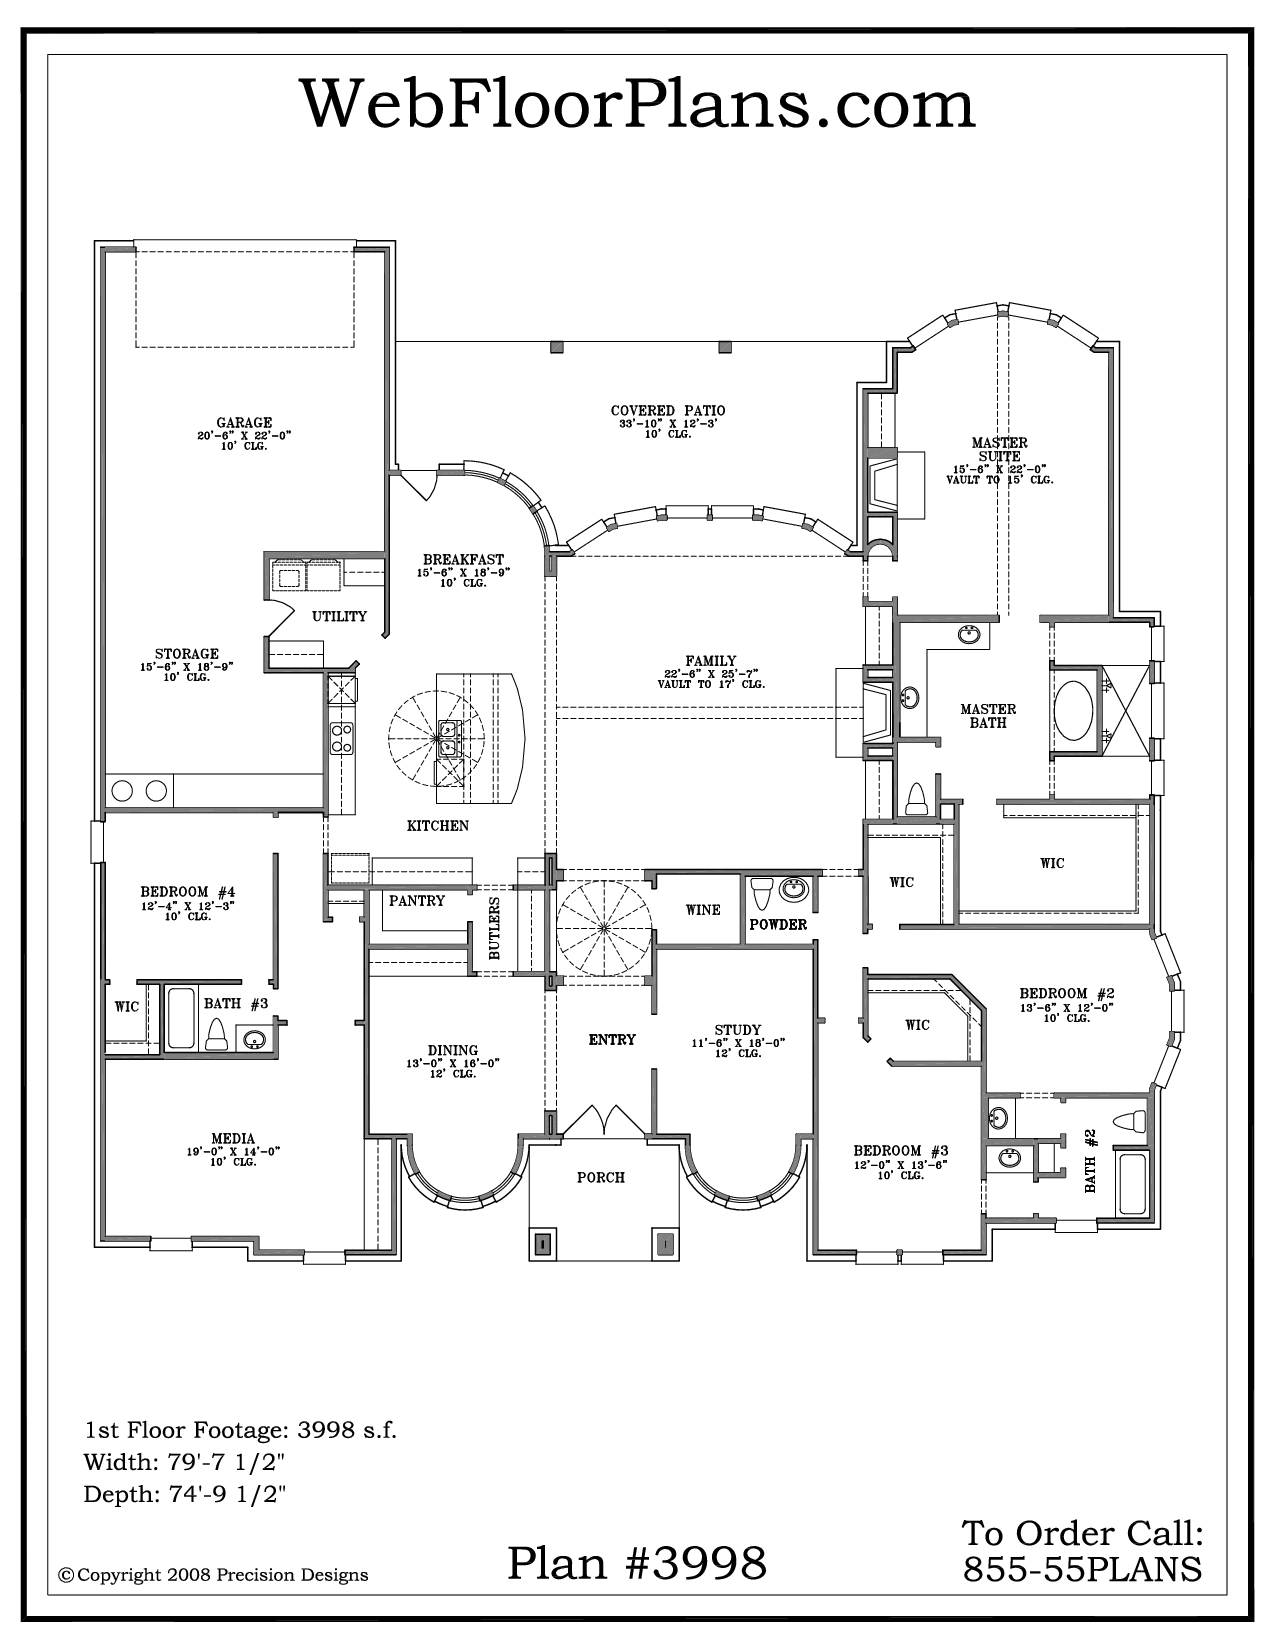 Nice Single Story Home Plans 1 One Story House Plans Bedroom Interiordesignlivingroom Livi Barndominium Floor Plans House Floor Plans House Plans One Story